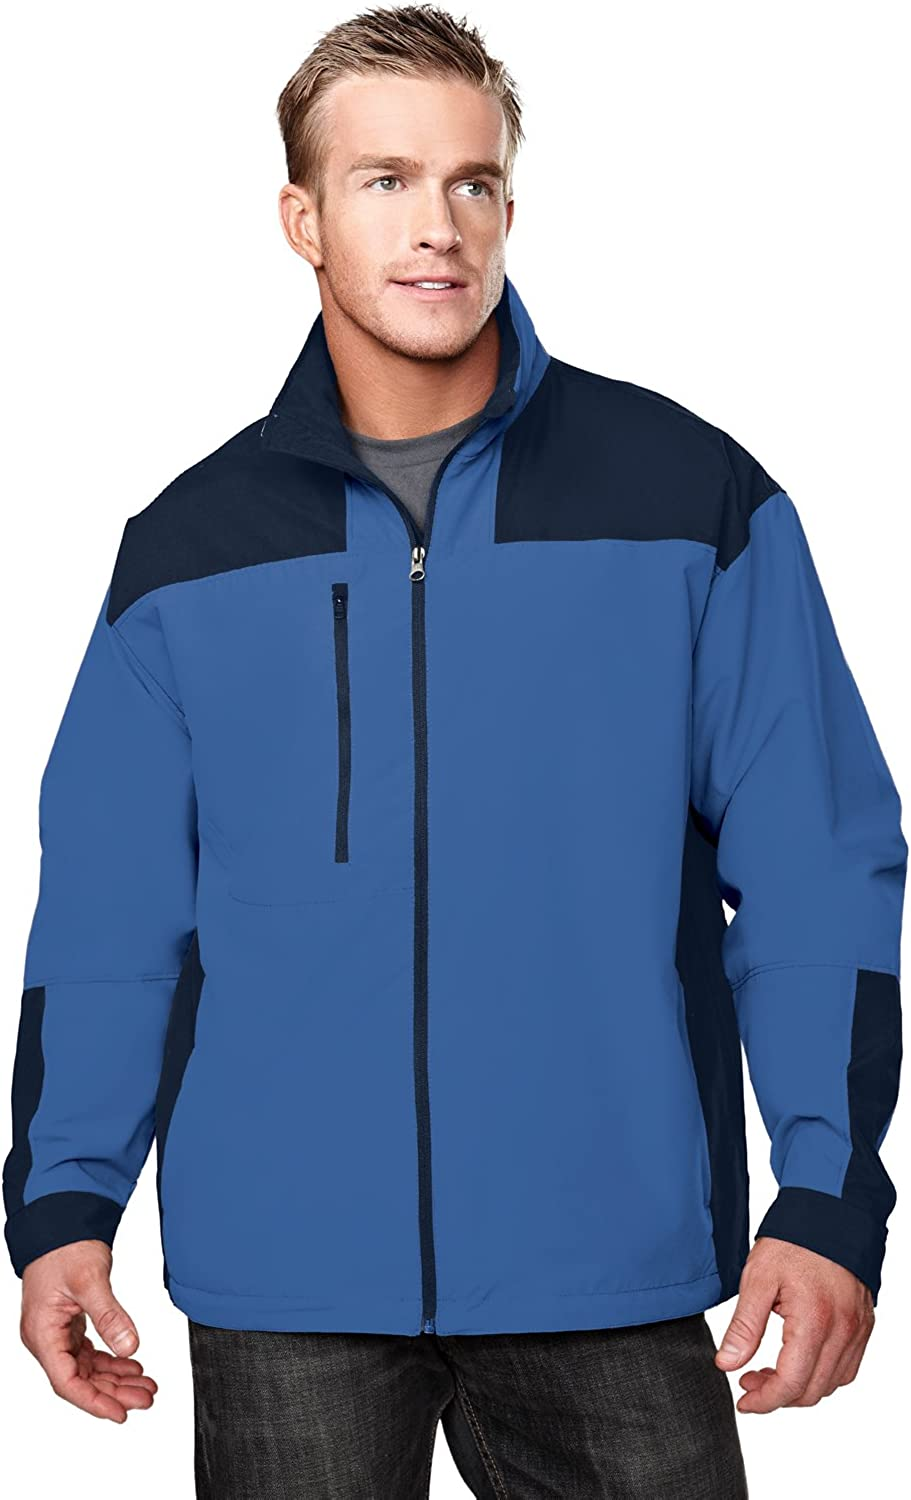 Tri-mountain Microfiber jacket with mesh lining. 6050TM - IMPERIAL BLUE/NAVY_S